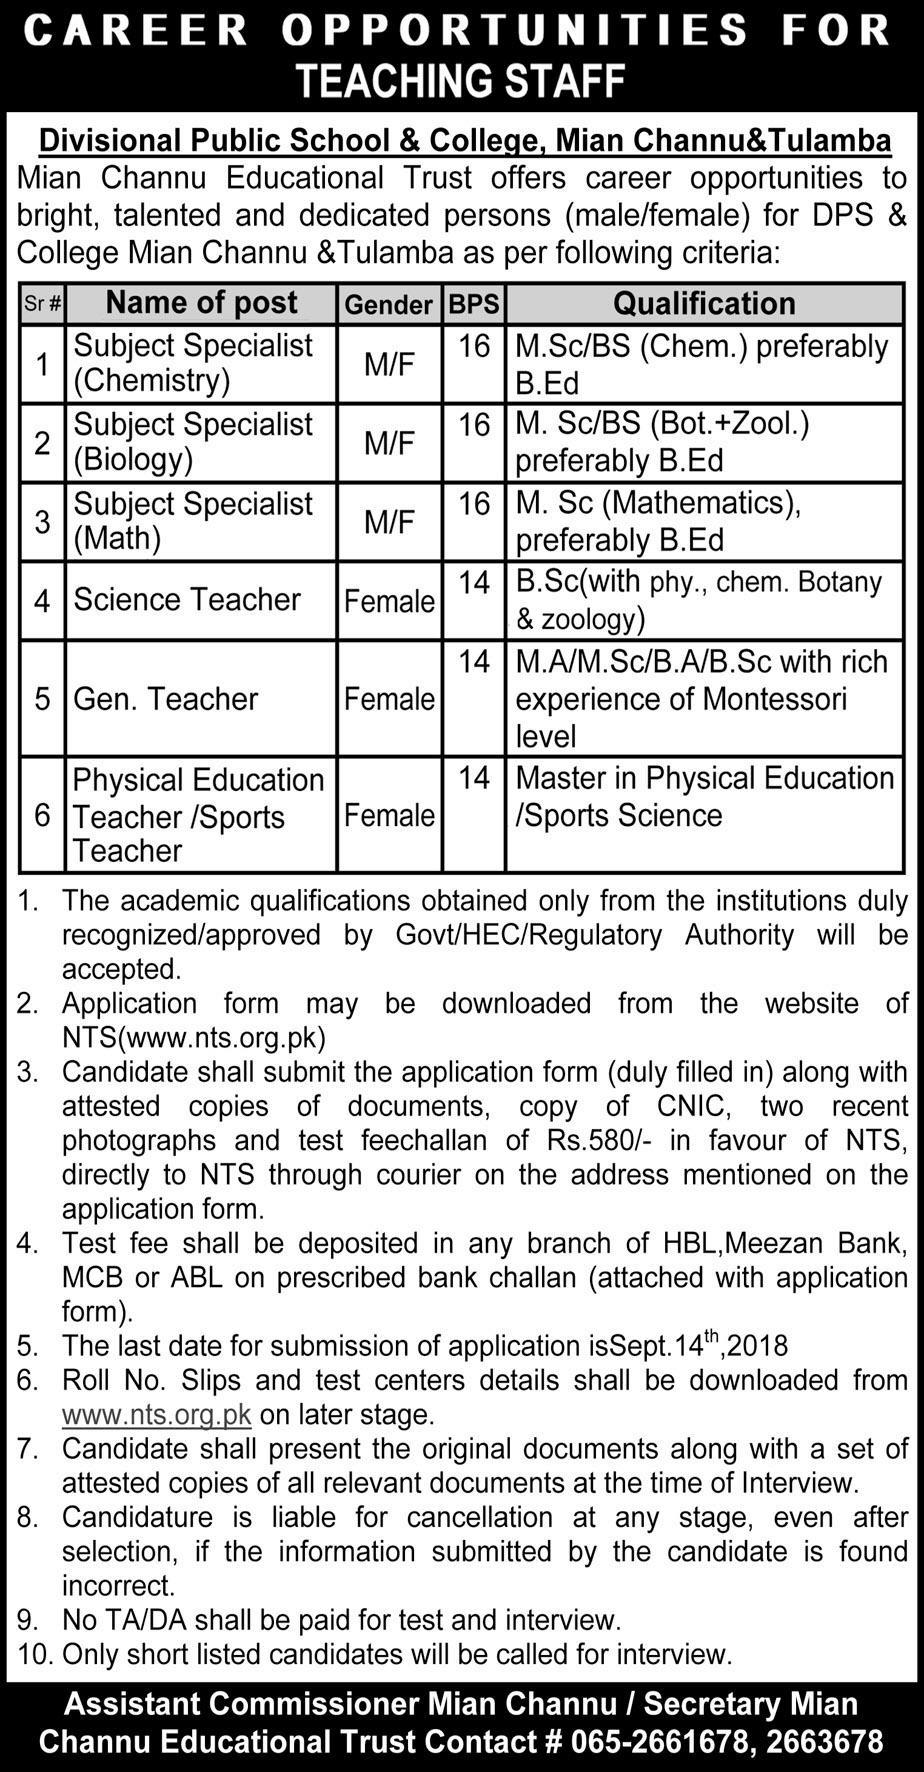 Divisional Public School & College, Mian Channu Tulamba NTS Jobs 2018 Application Form Download